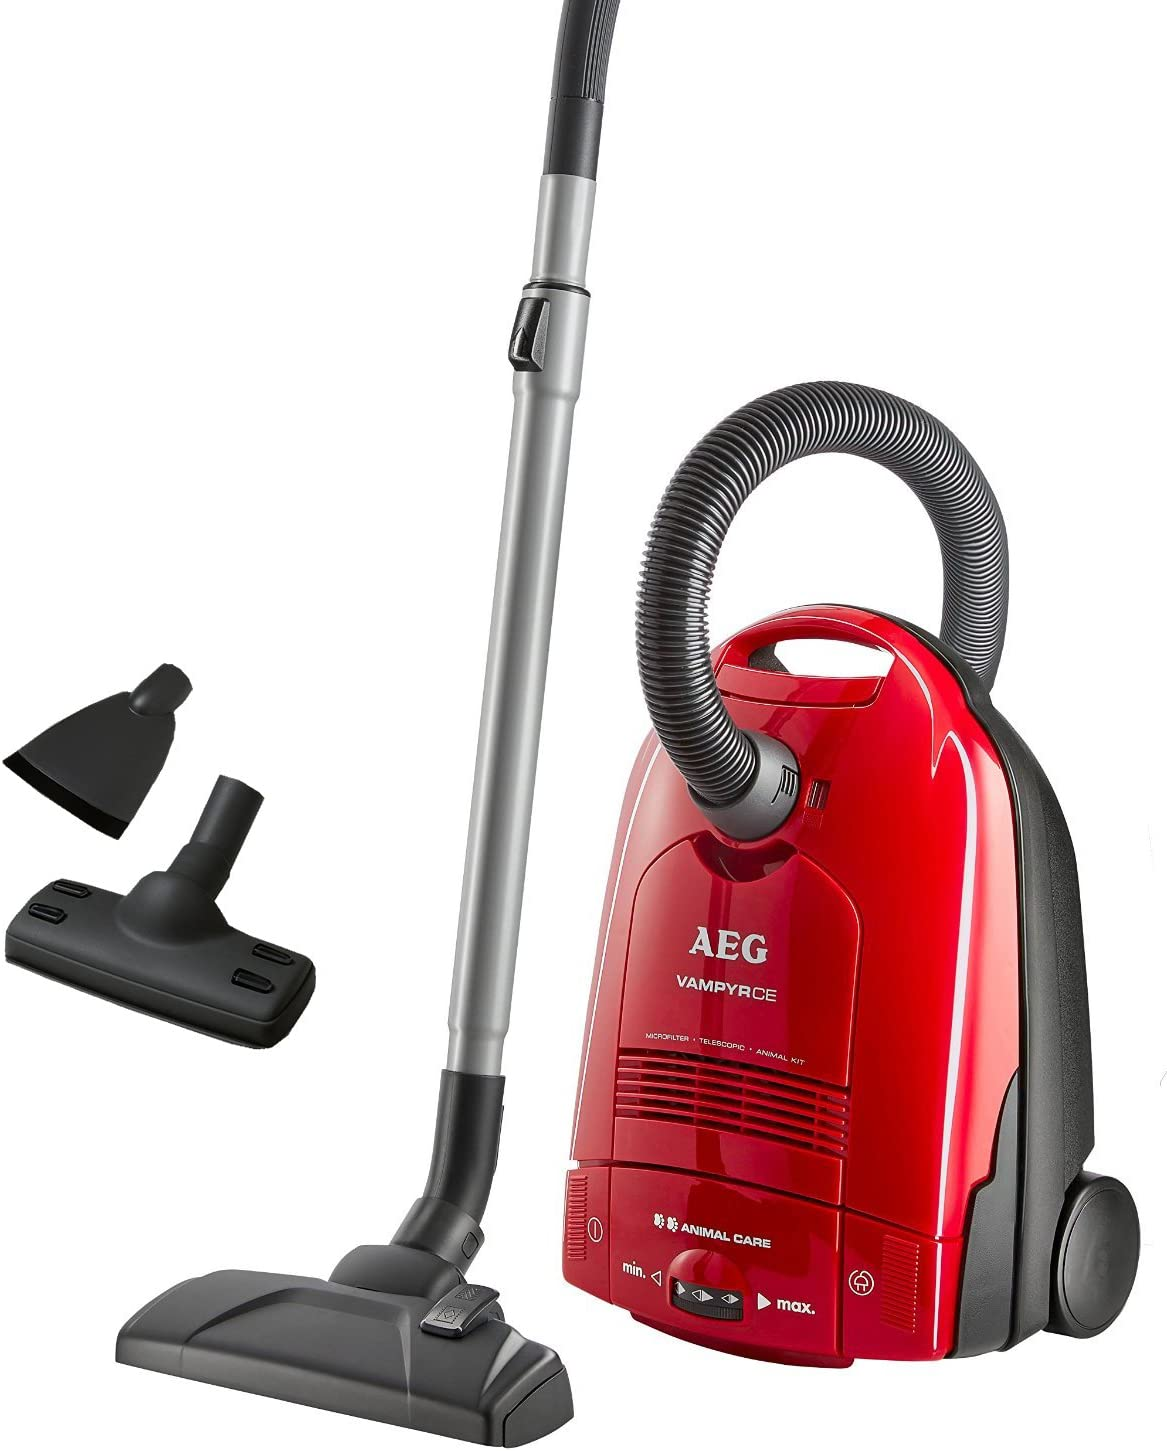 AEG 903151834 - Aspiradora de trineo, 1500 W, color rojo: Amazon ...